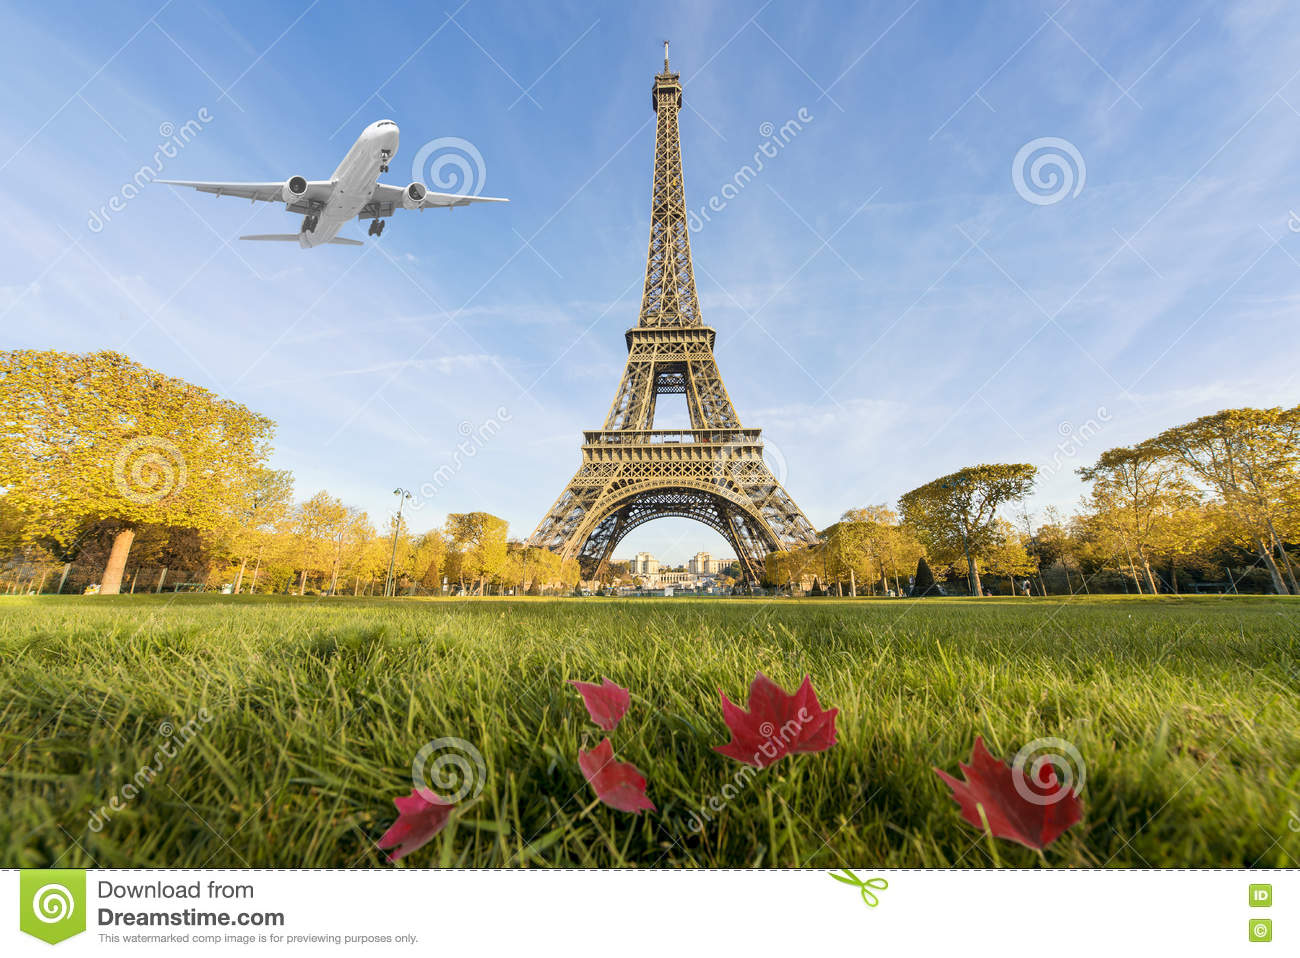 Luxury Airplane Over Eiffel Tower : Airplane flying over eiffel tower paris france stock